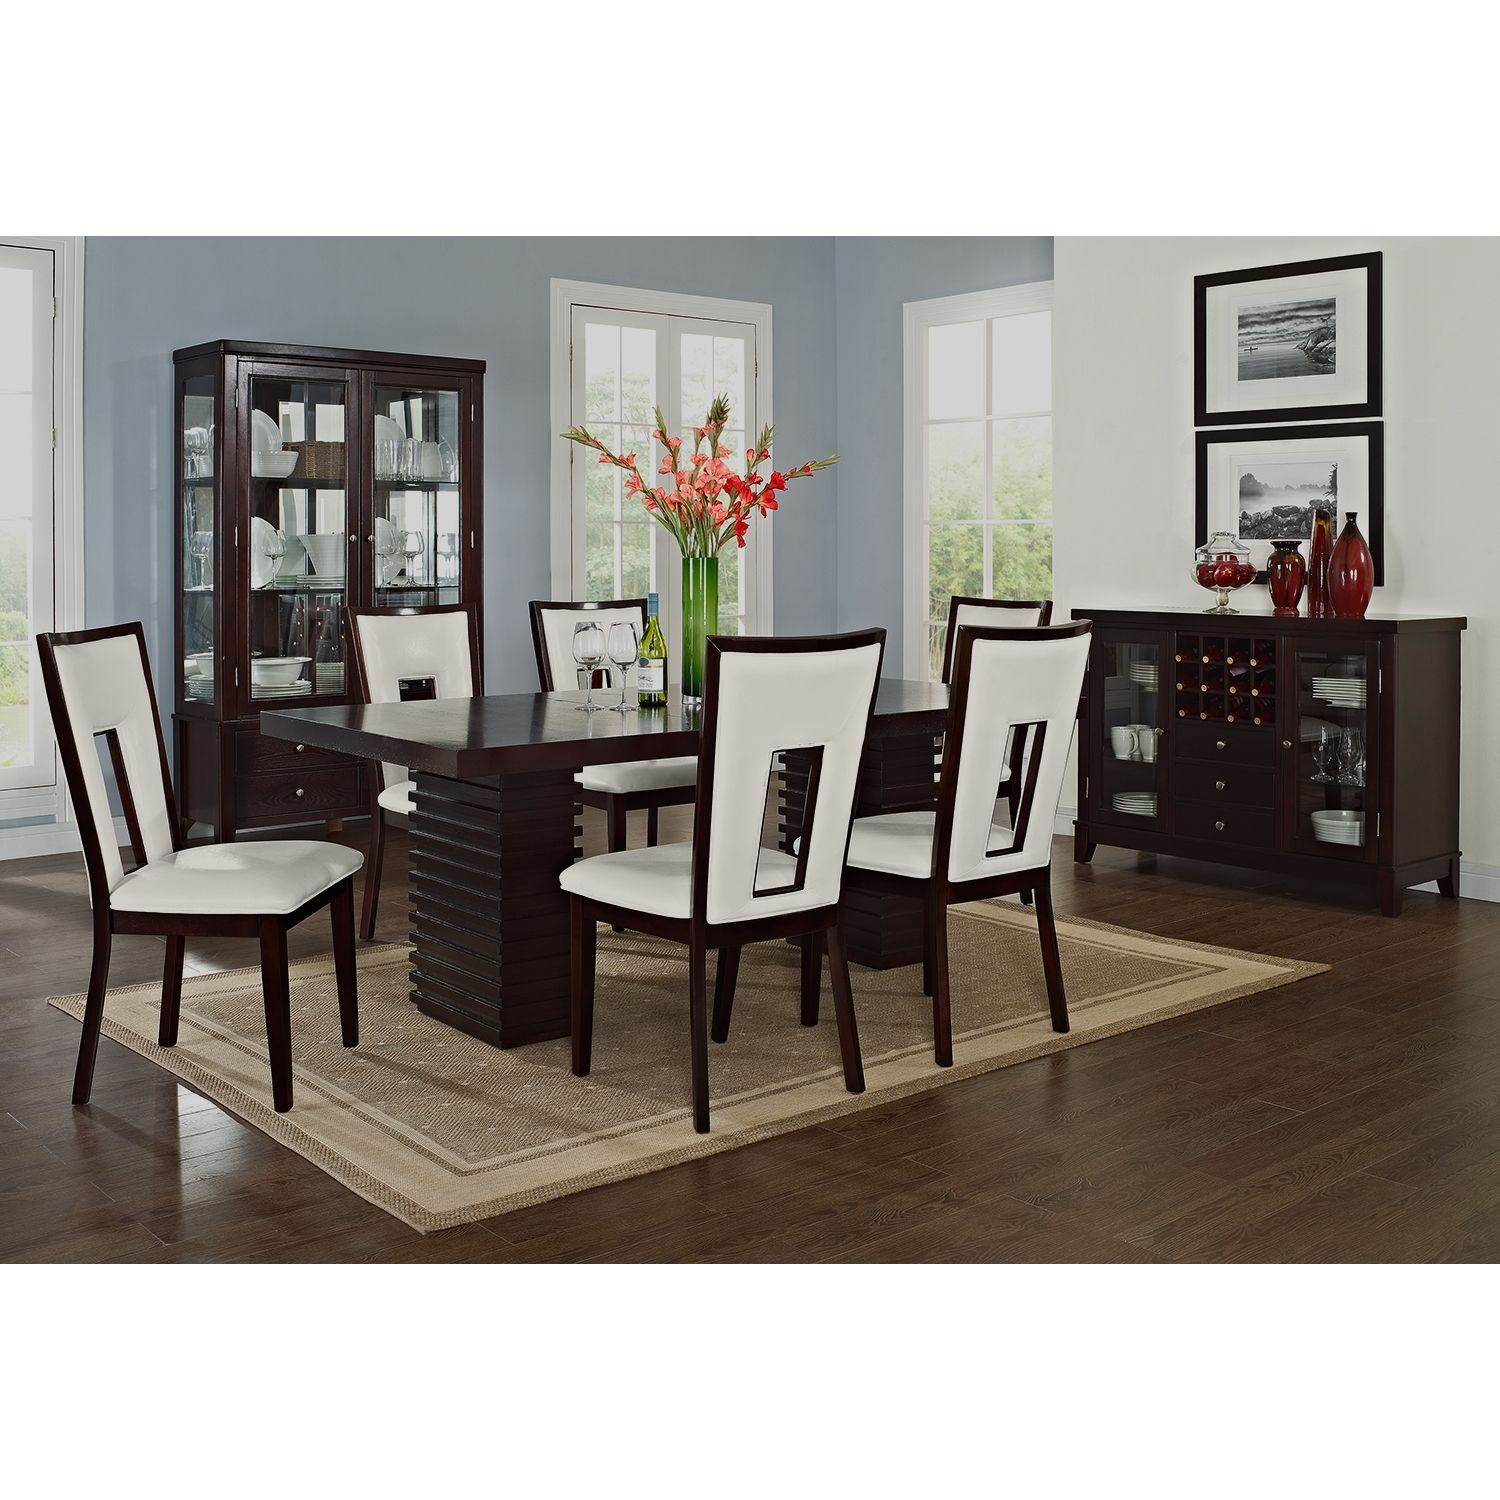 Paragon Madera II 7 Pc Dining Room